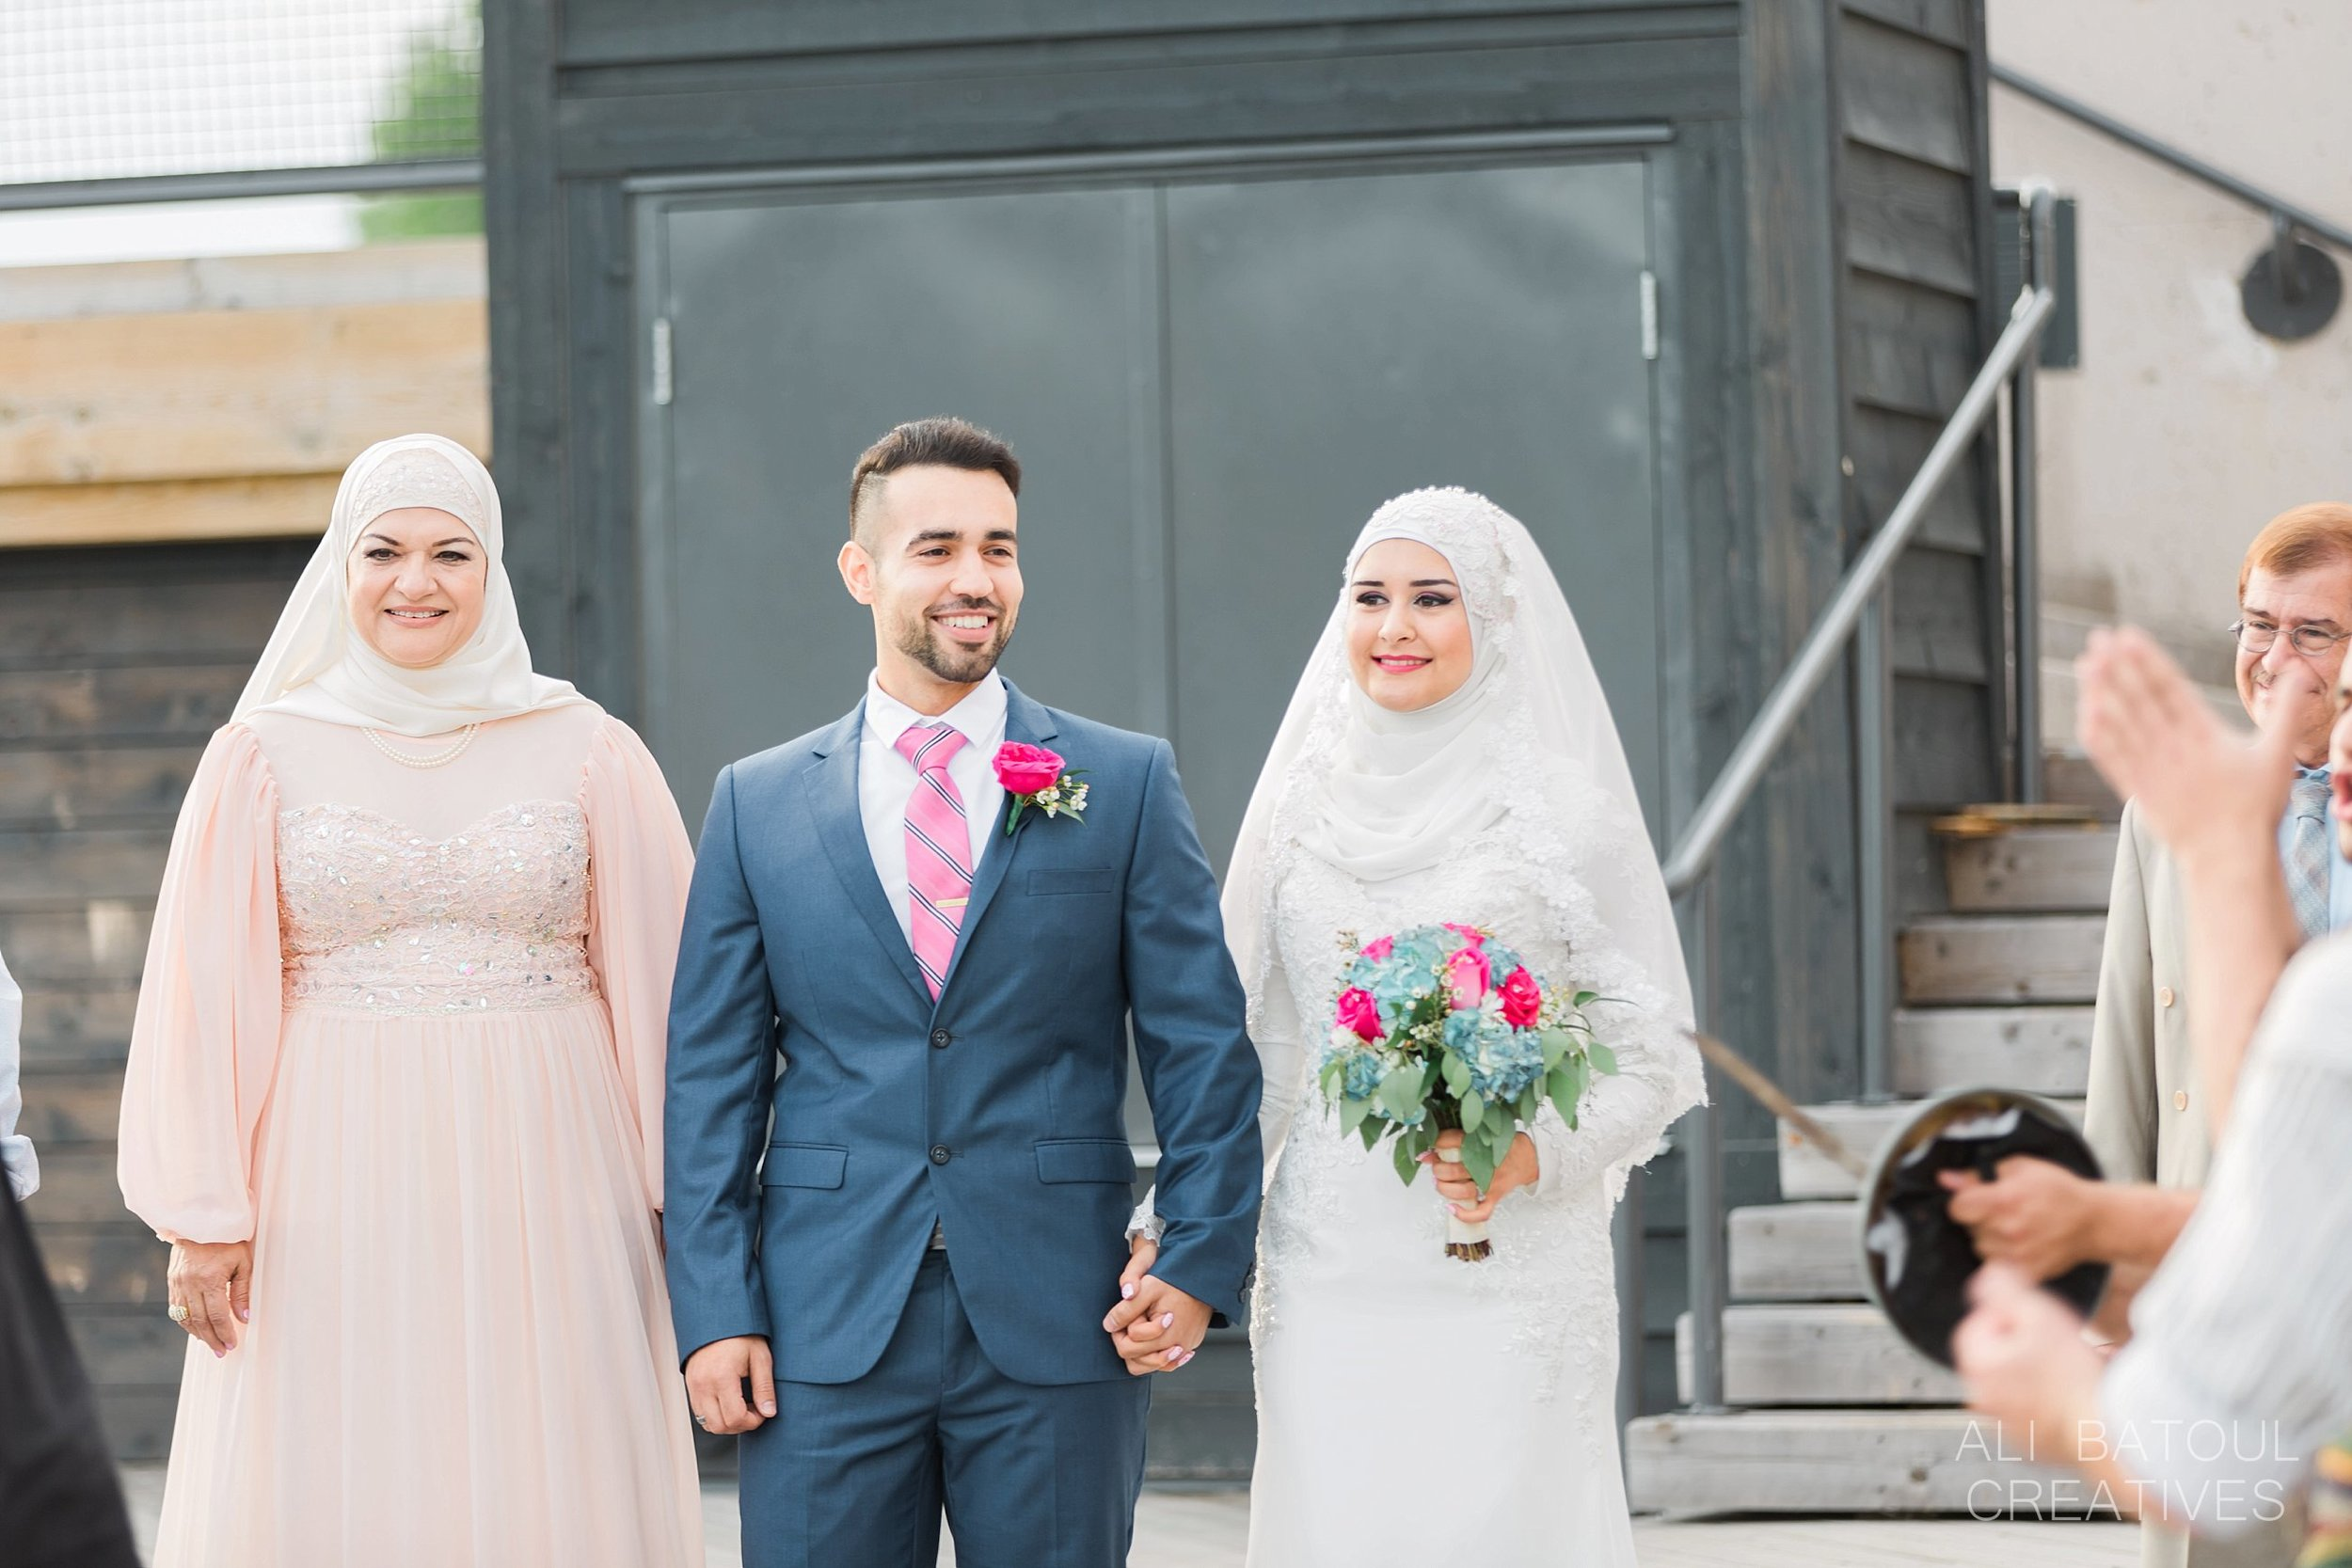 Hanan + Said - Ali Batoul Creatives Fine Art Wedding Photography_0299.jpg